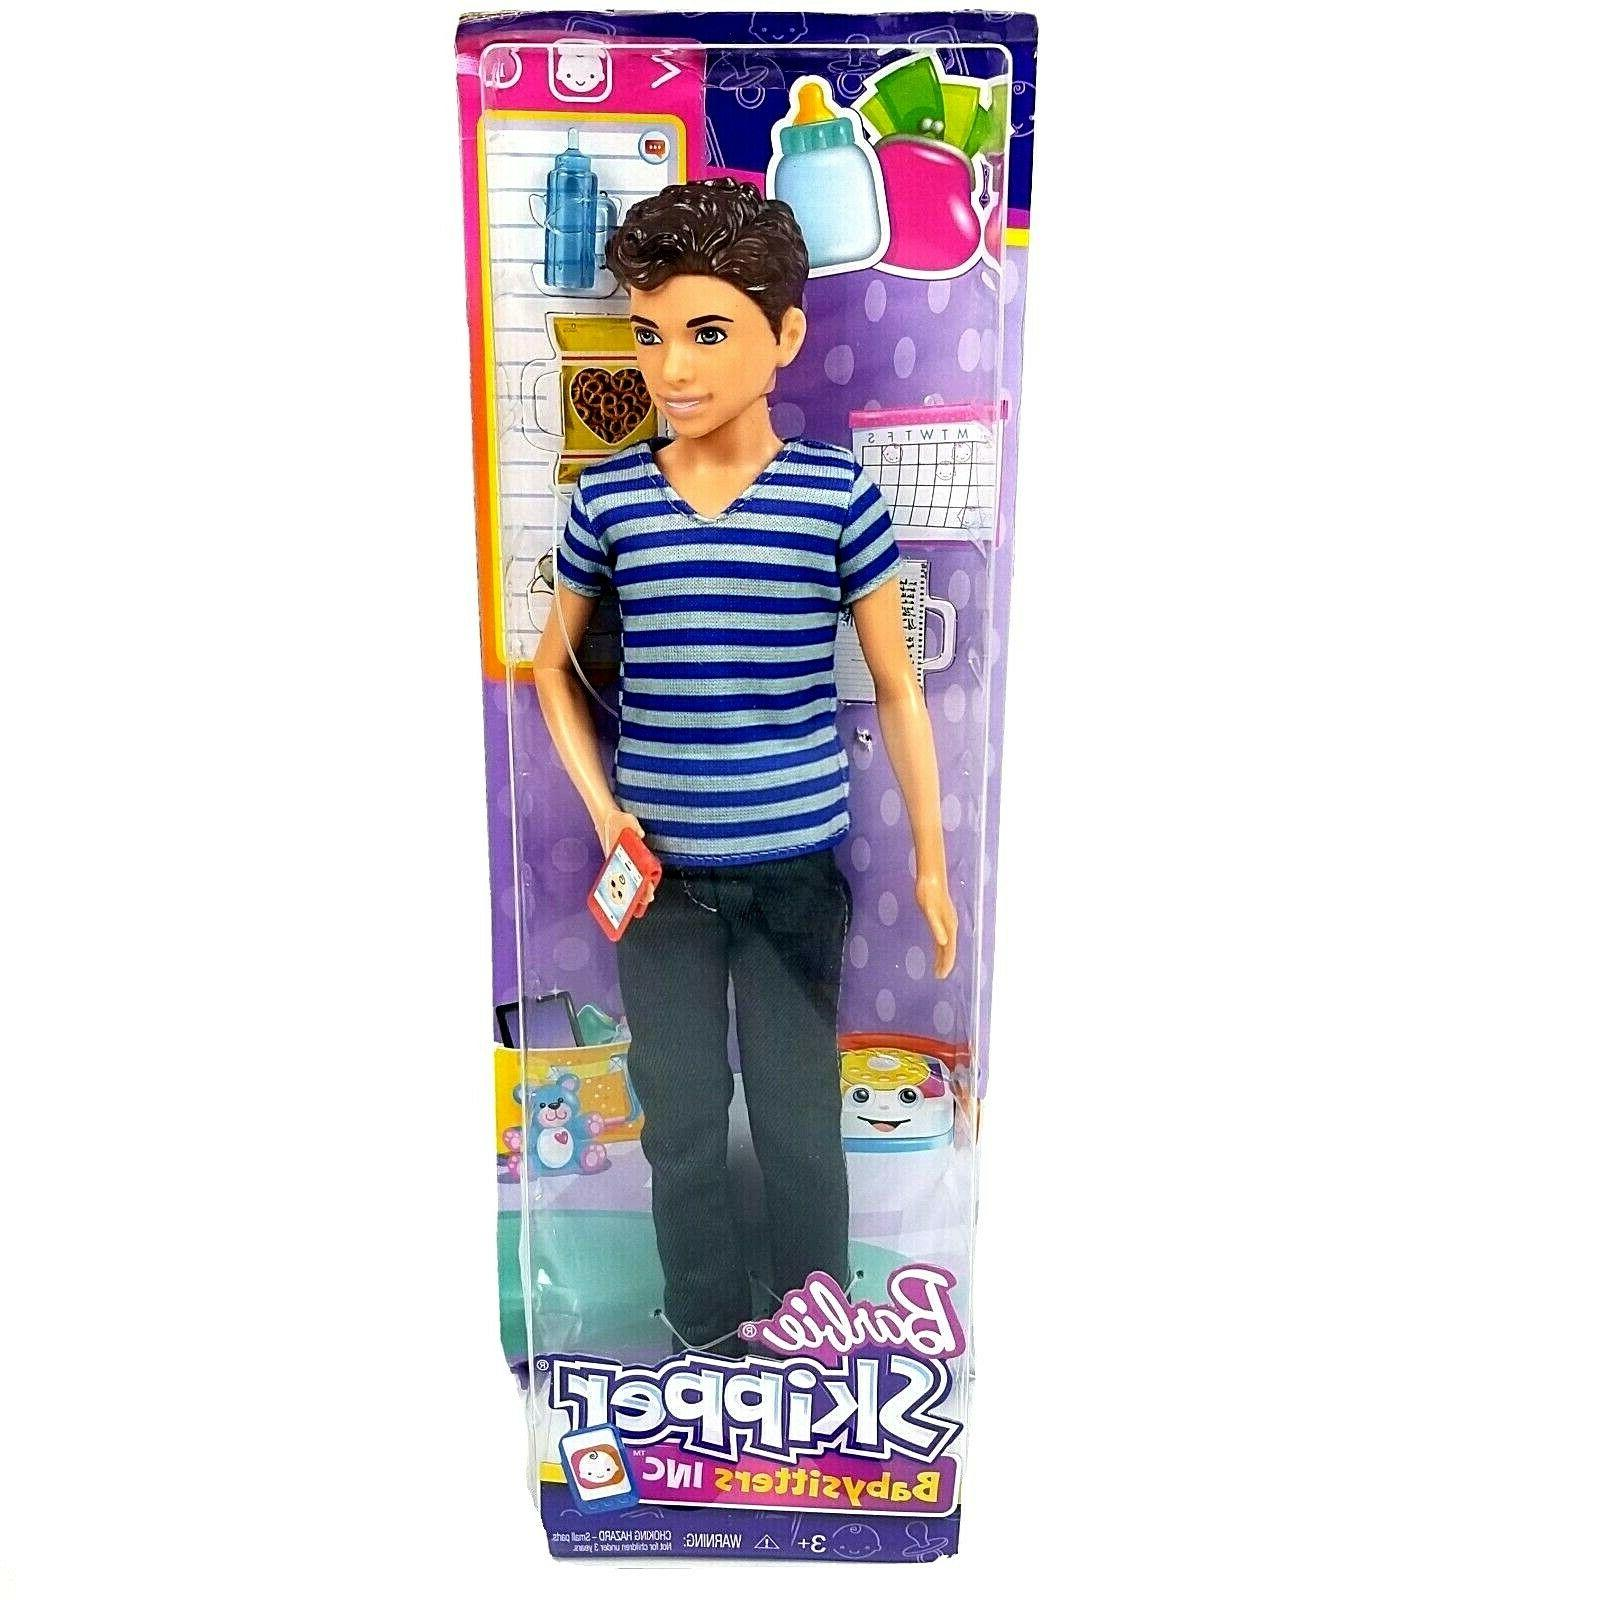 Barbie Skipper Babysitters Inc Boy Sitter Doll